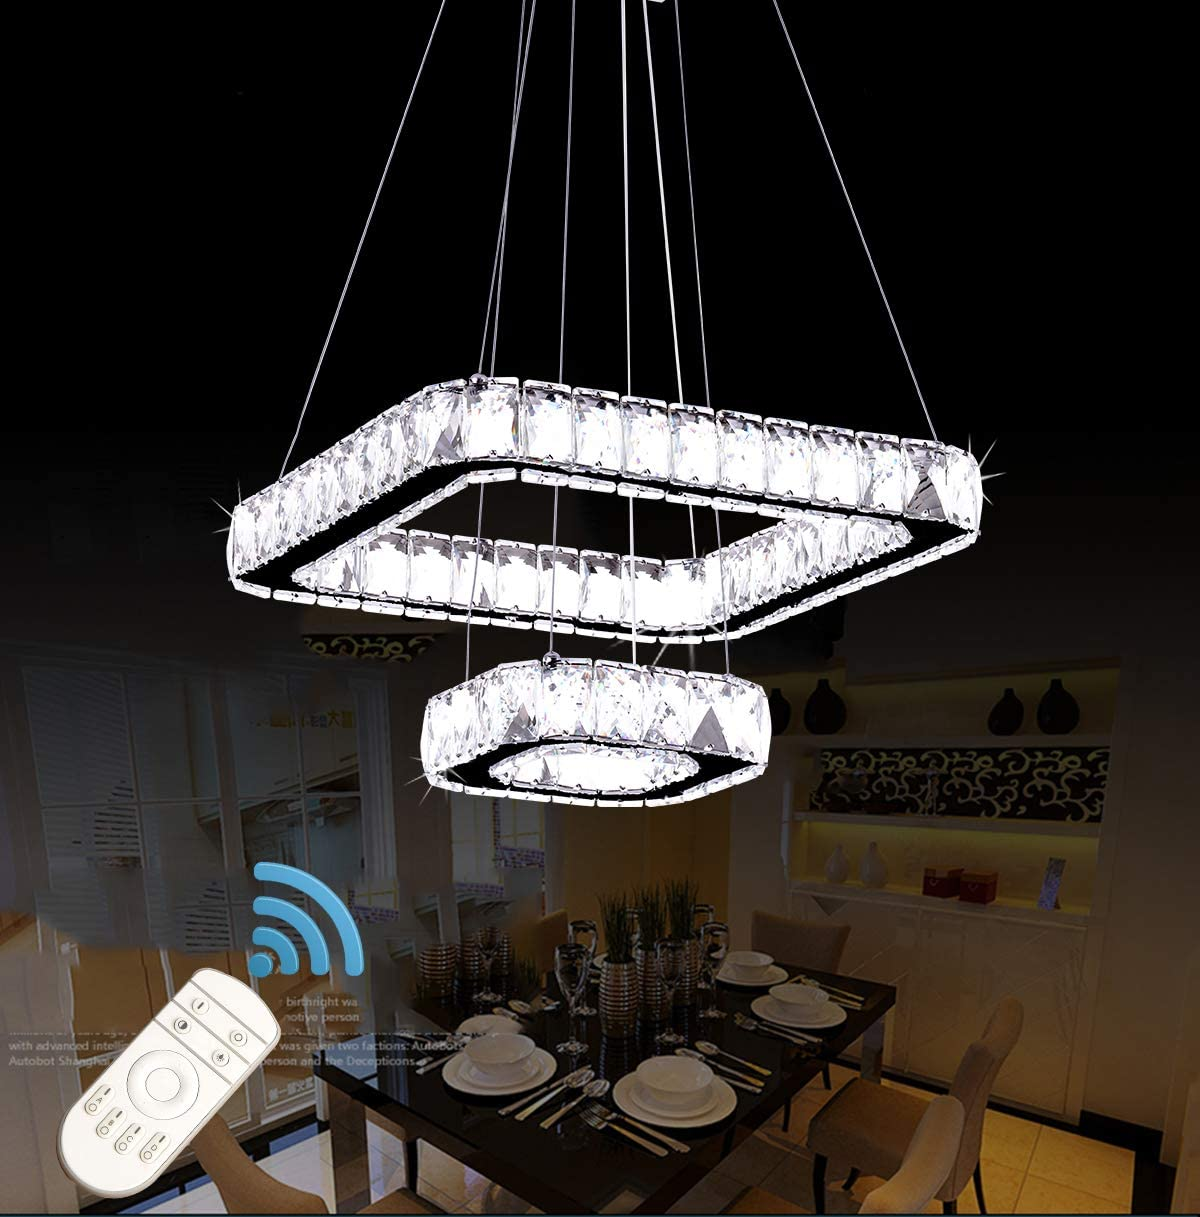 Ganeed Crystal Chandelier,2-Ring 32W Cool White Chandeliers LED Ceiling Lights,Adjustable Height Pendant Lights Hanging Light Fixture for Living Room Dinner Room Bedroom Kitchen Dia 7.8 15.7